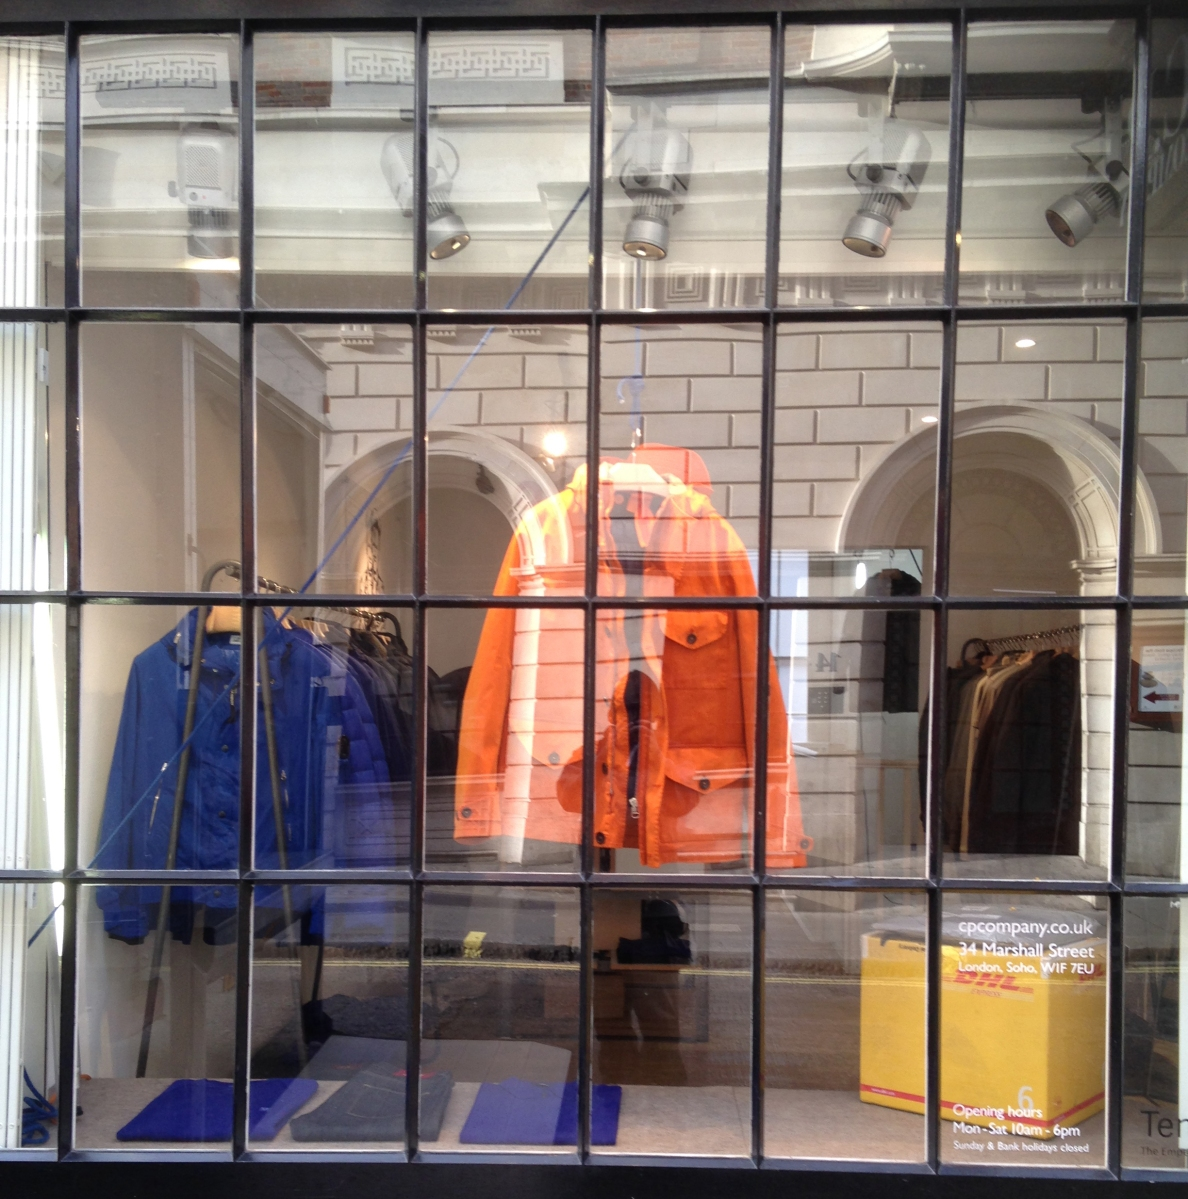 Window Shopping in Soho (2) - C.P Company